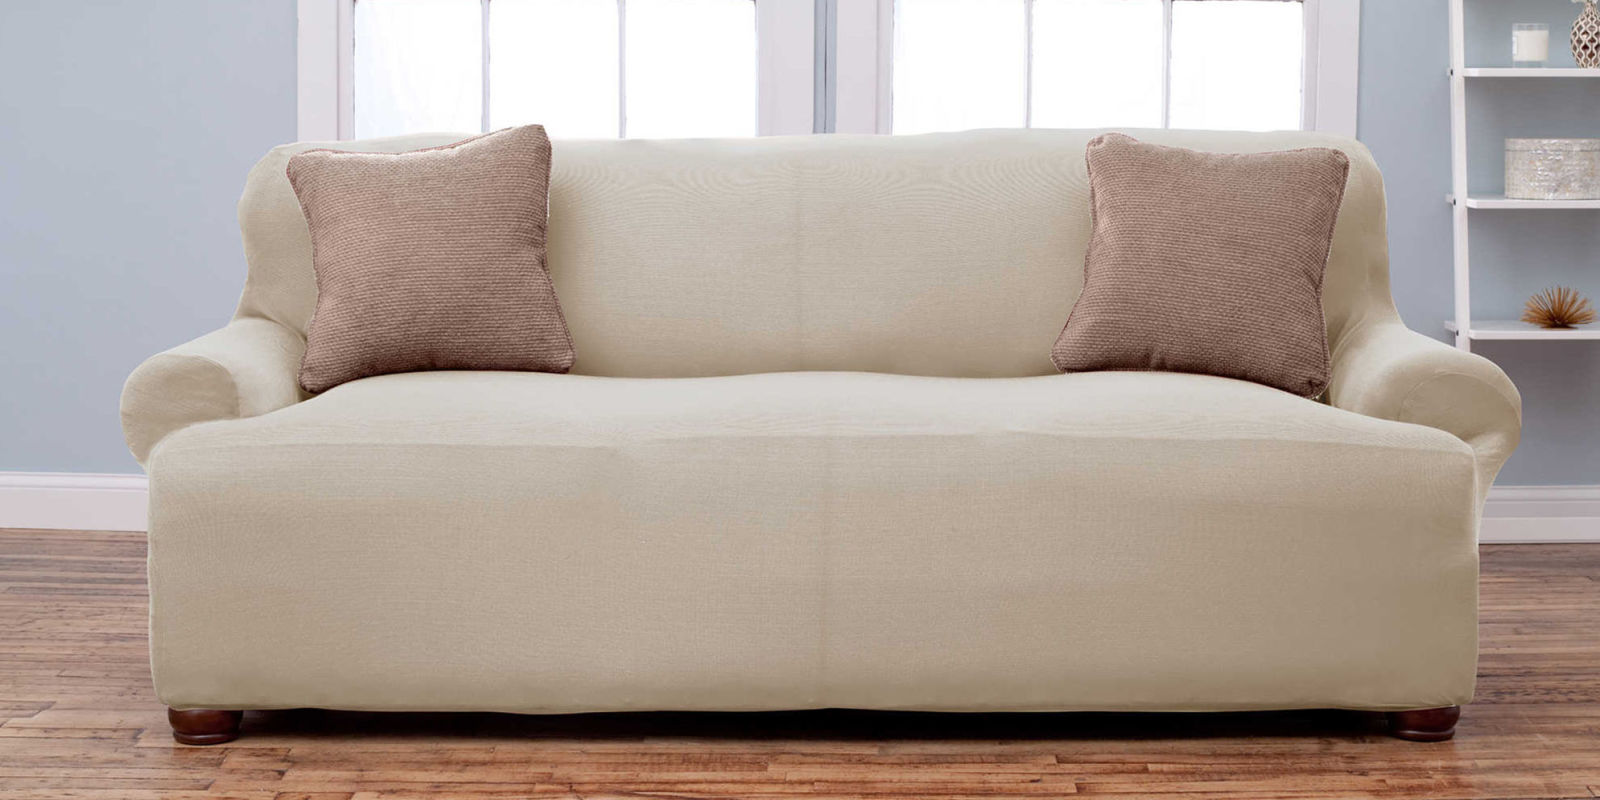 10 best sofa covers in 2017 top rated couch and chair